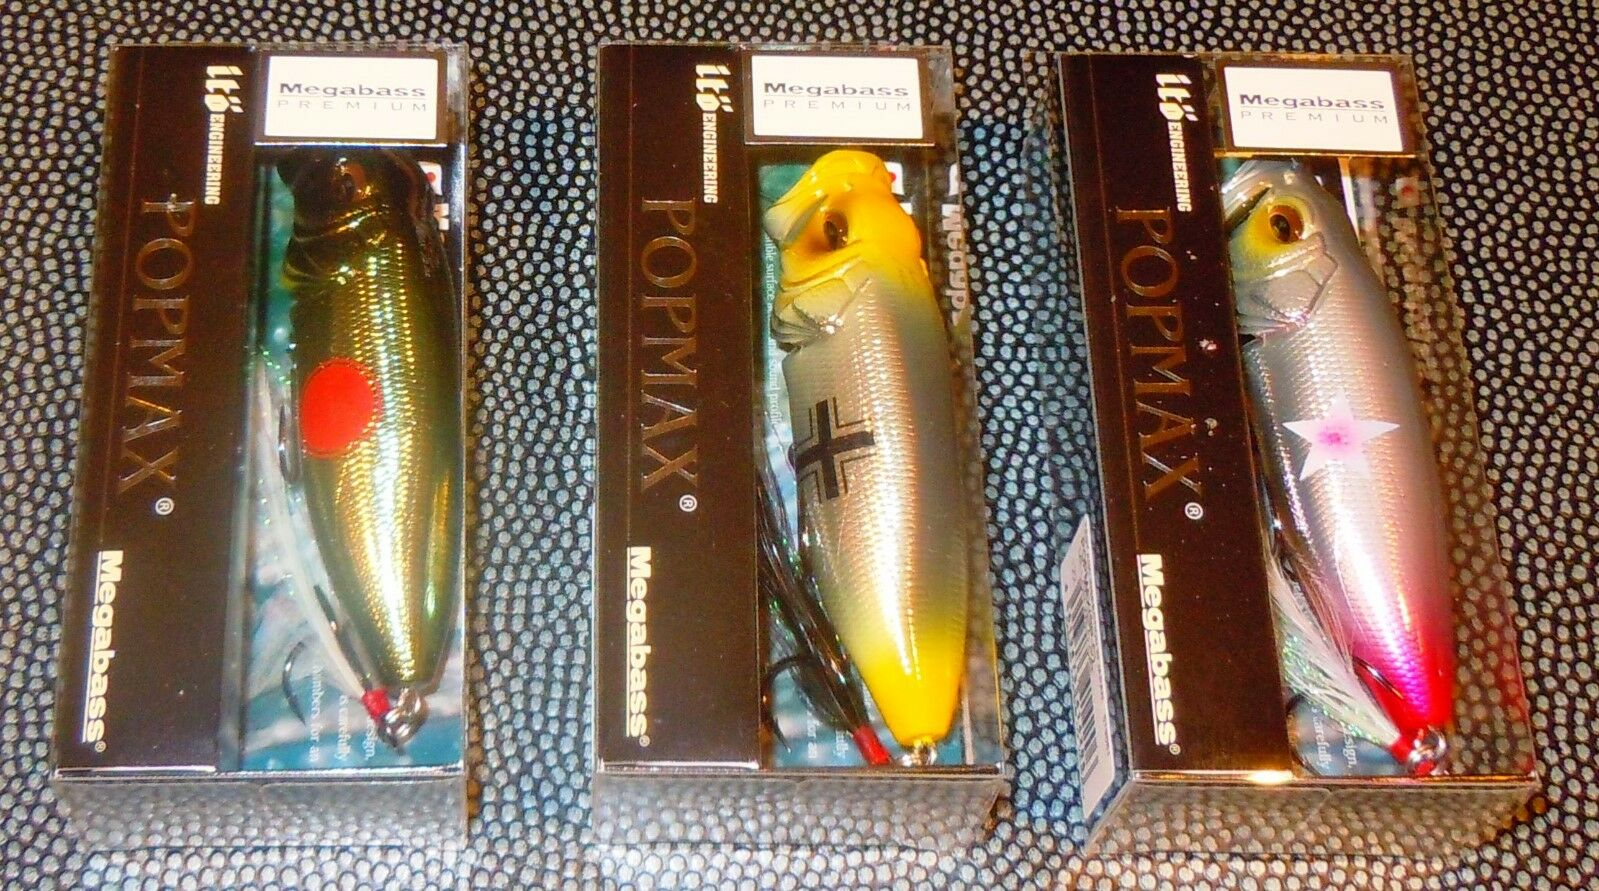 Megabass Premium Fighter color POP-MAX MILLOR SET    Wildcat   Bf109   Shiden